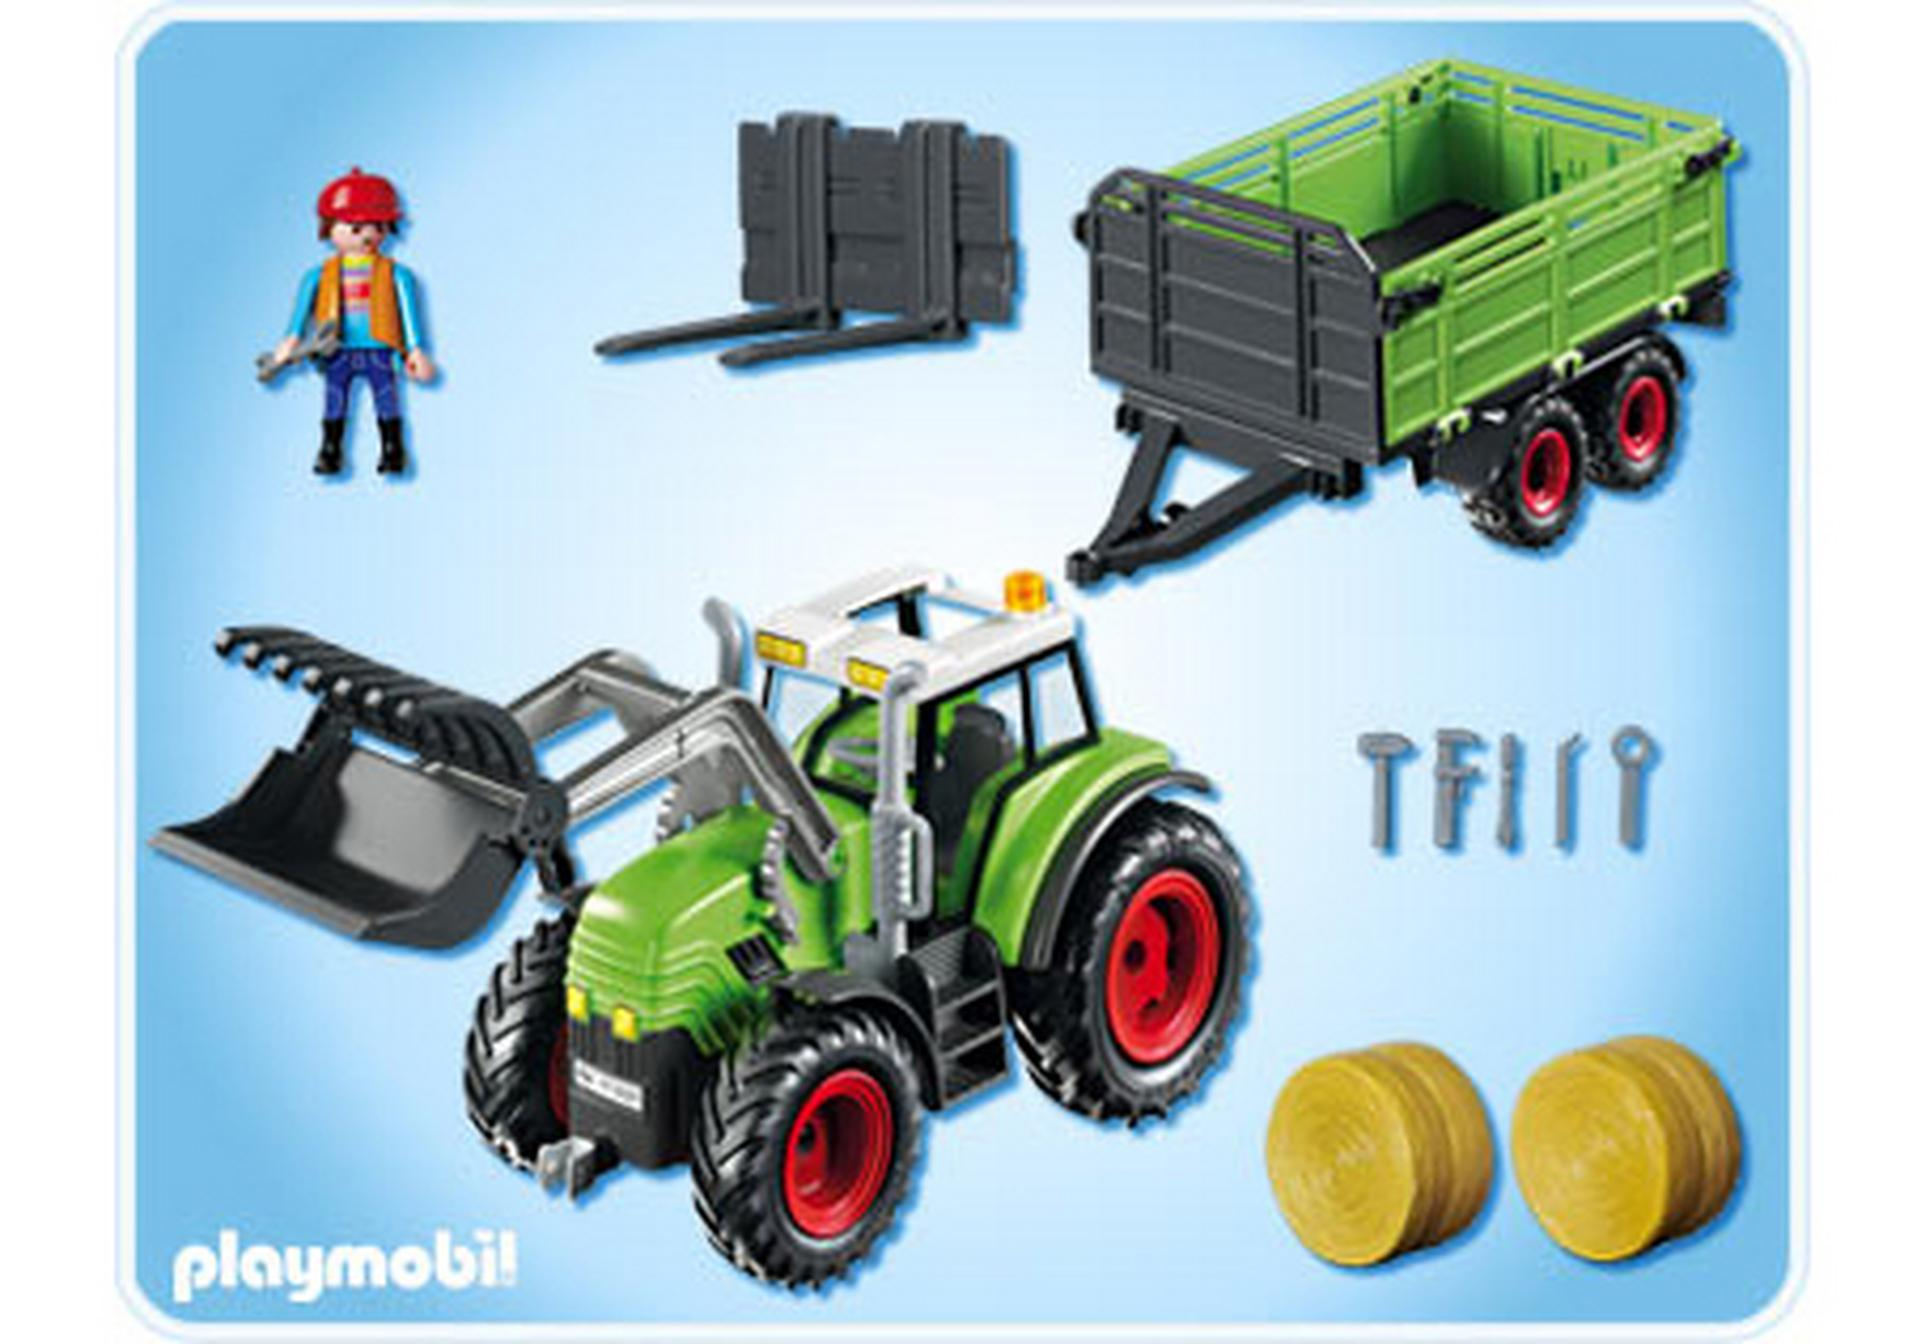 riesen traktor mit anh nger 5121 a playmobil deutschland. Black Bedroom Furniture Sets. Home Design Ideas